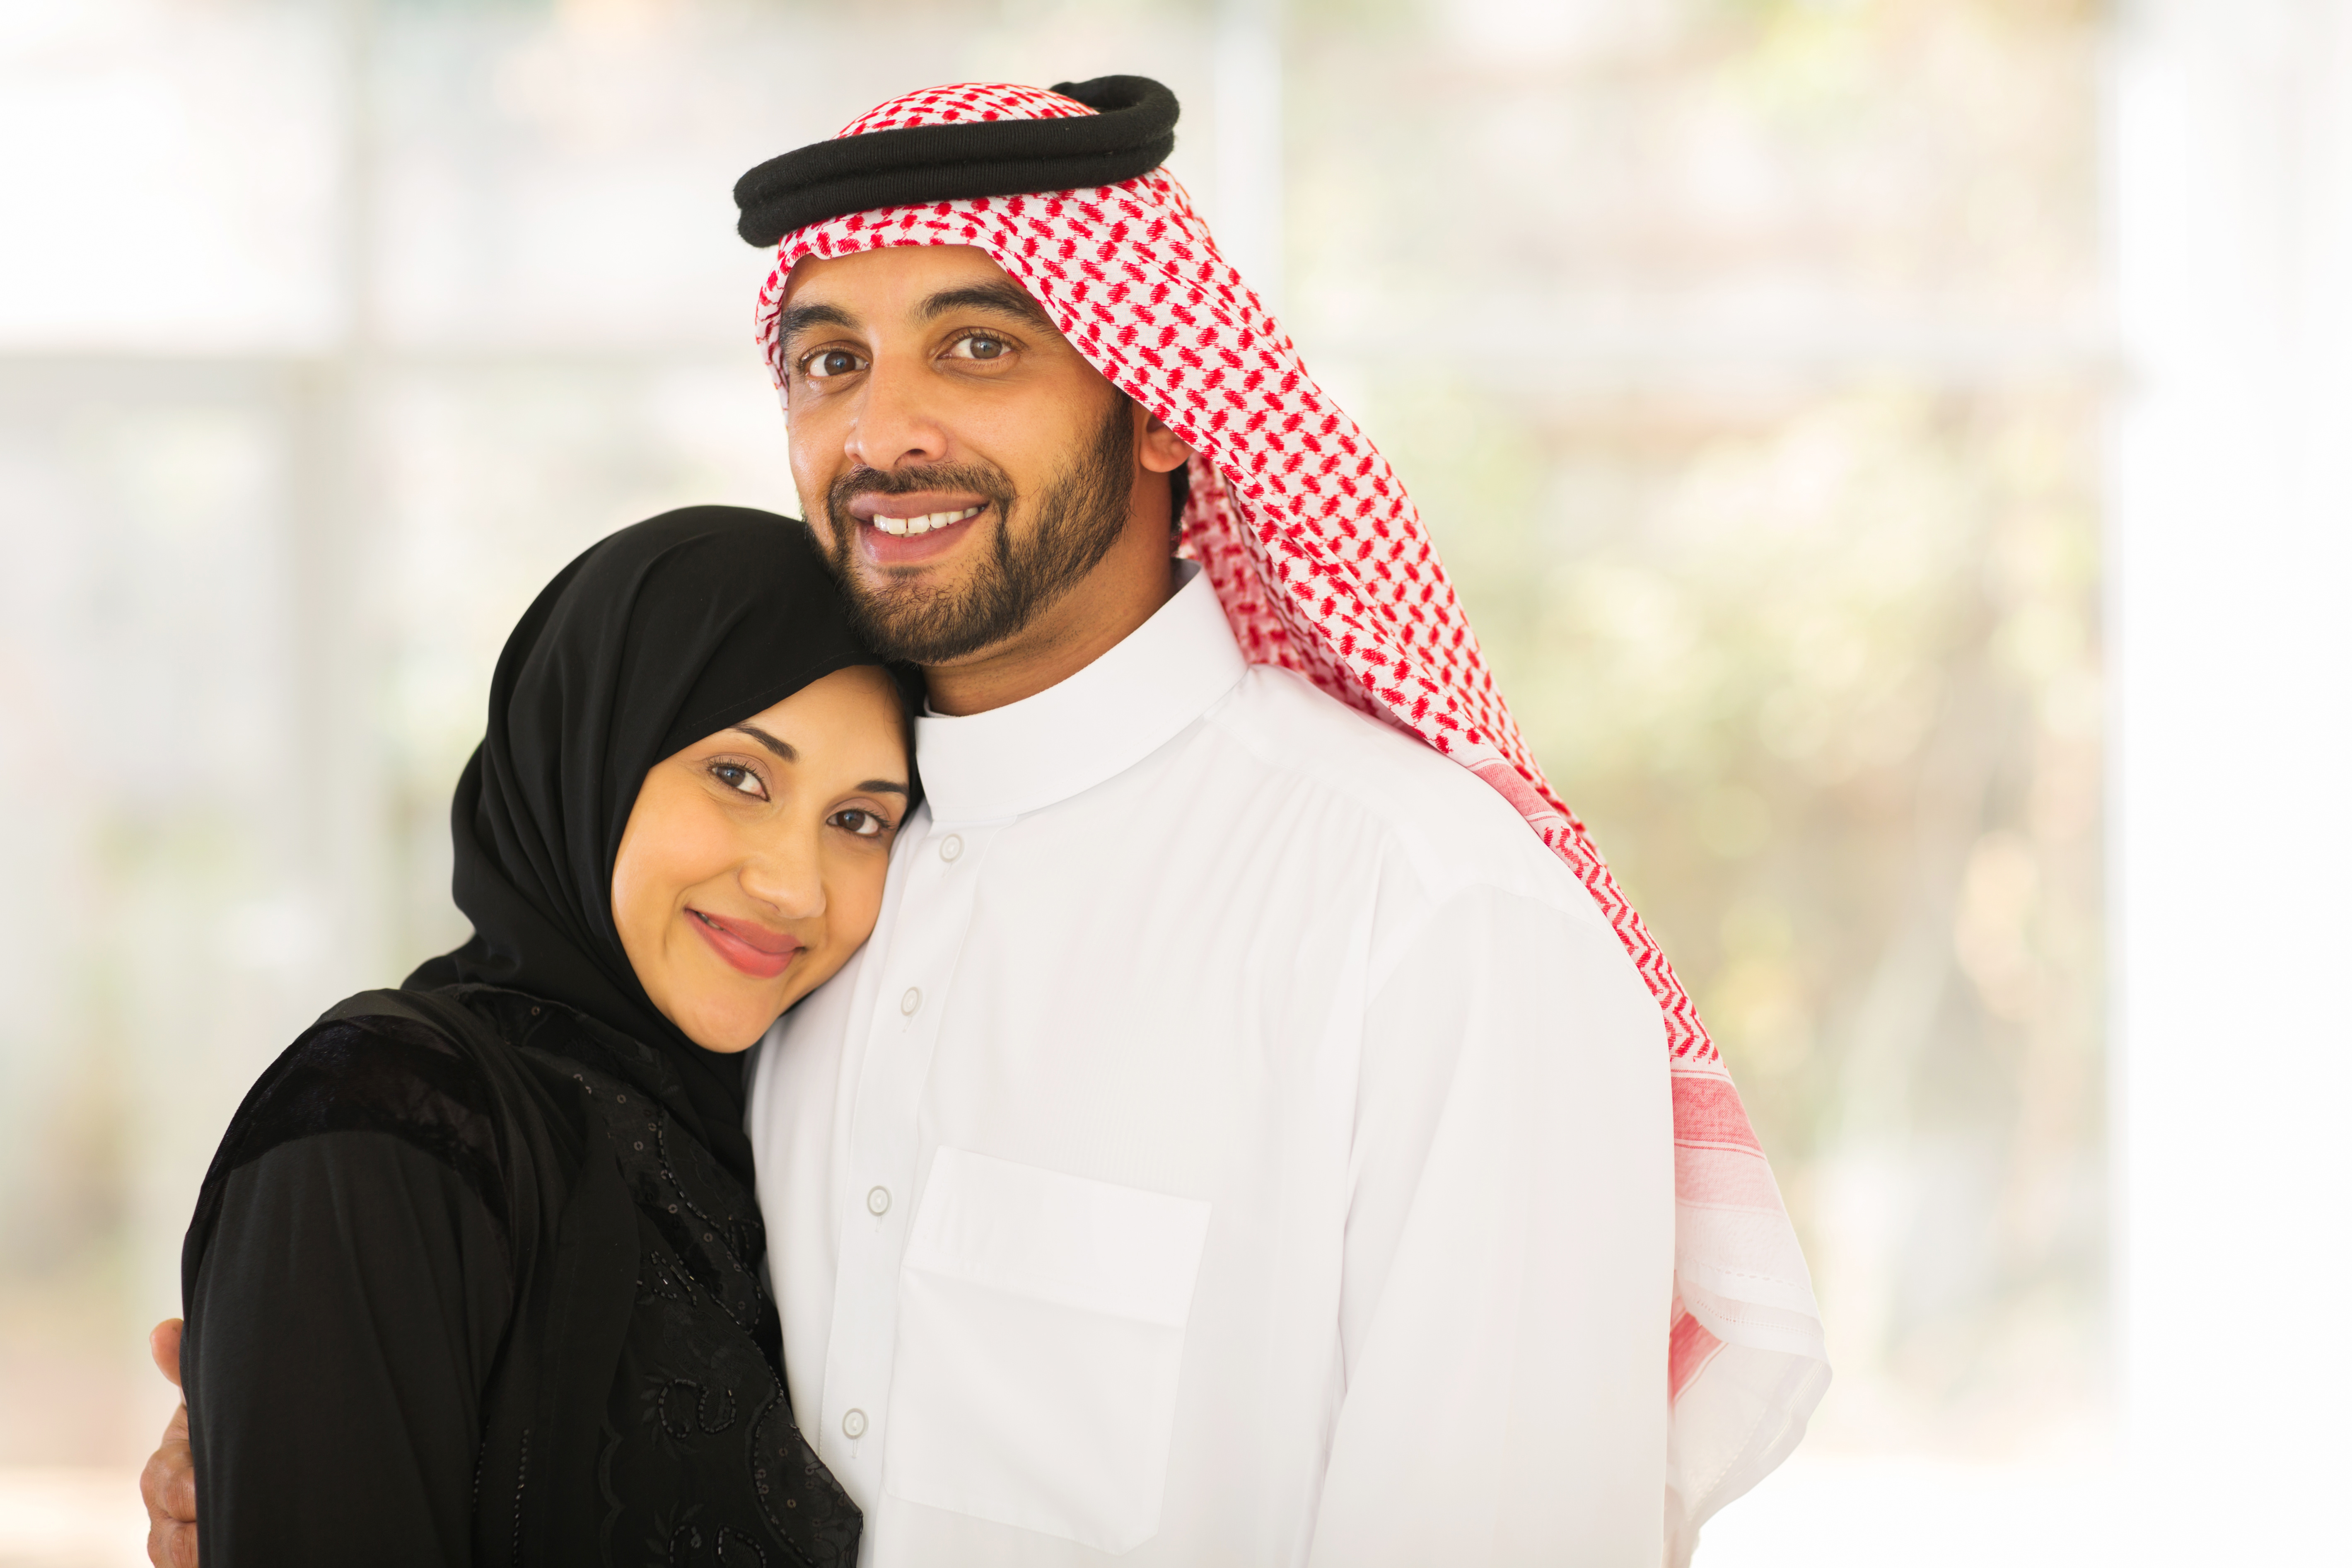 Sexy muslim couples pic and image pics 476